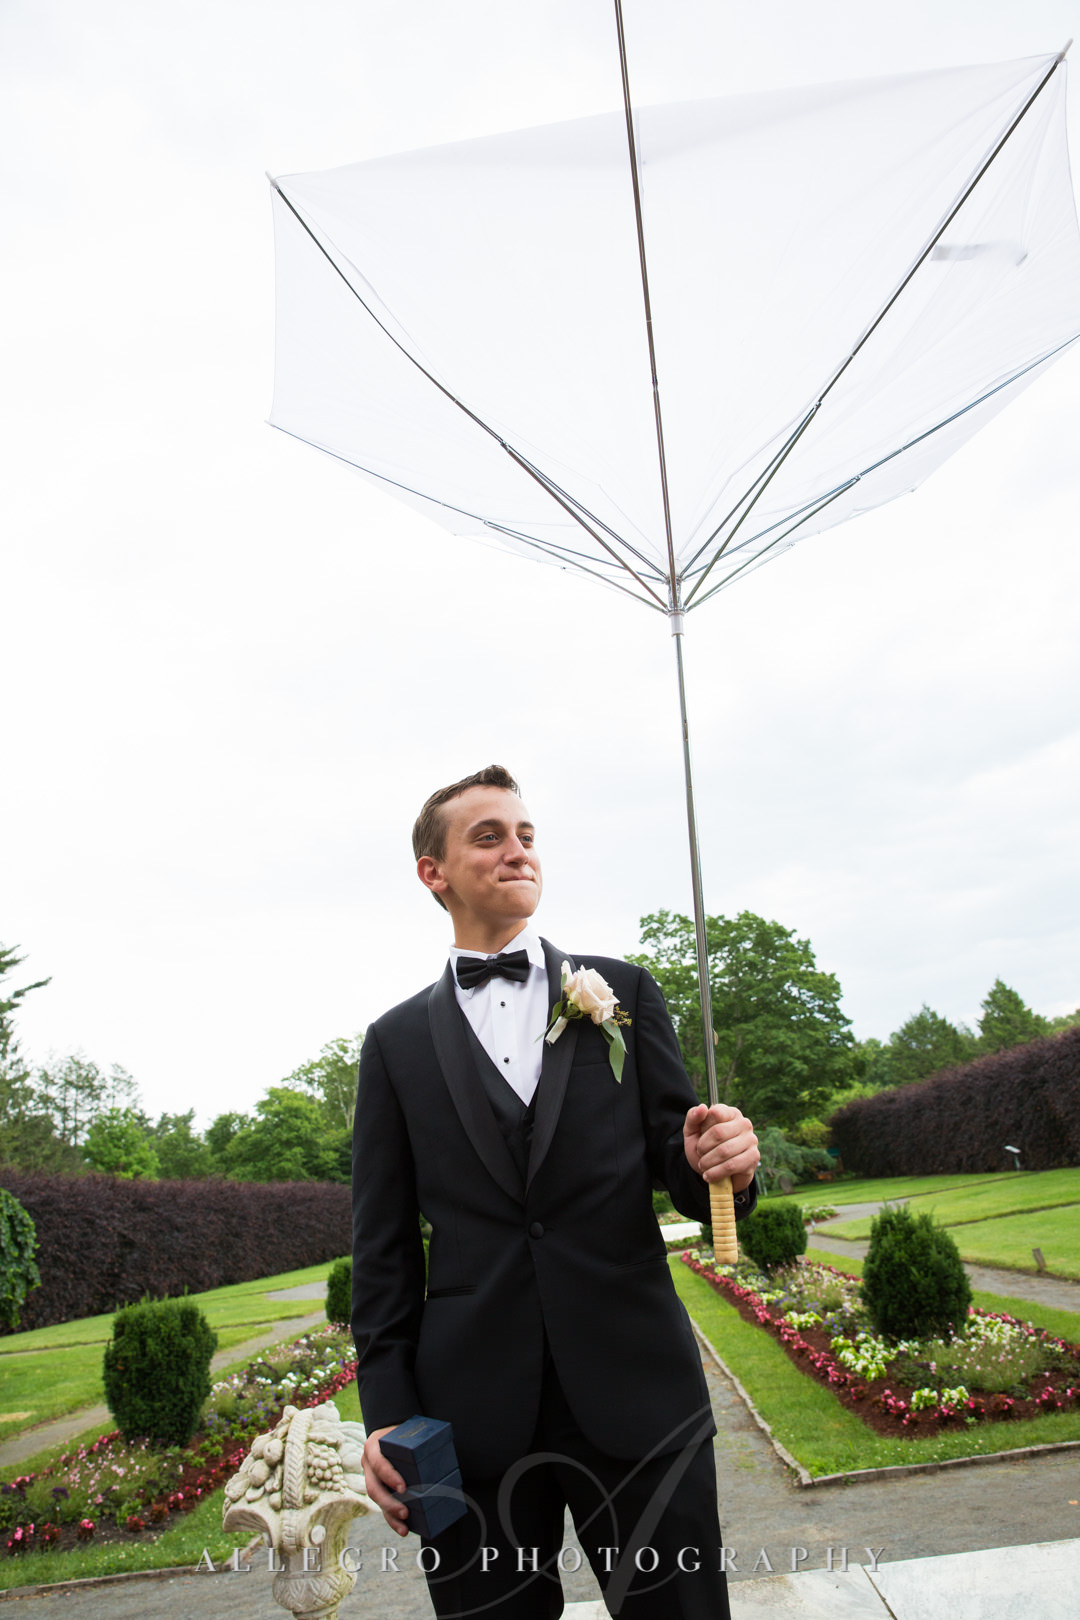 Son of groom holding upside-down umbrella | Allegro Photography